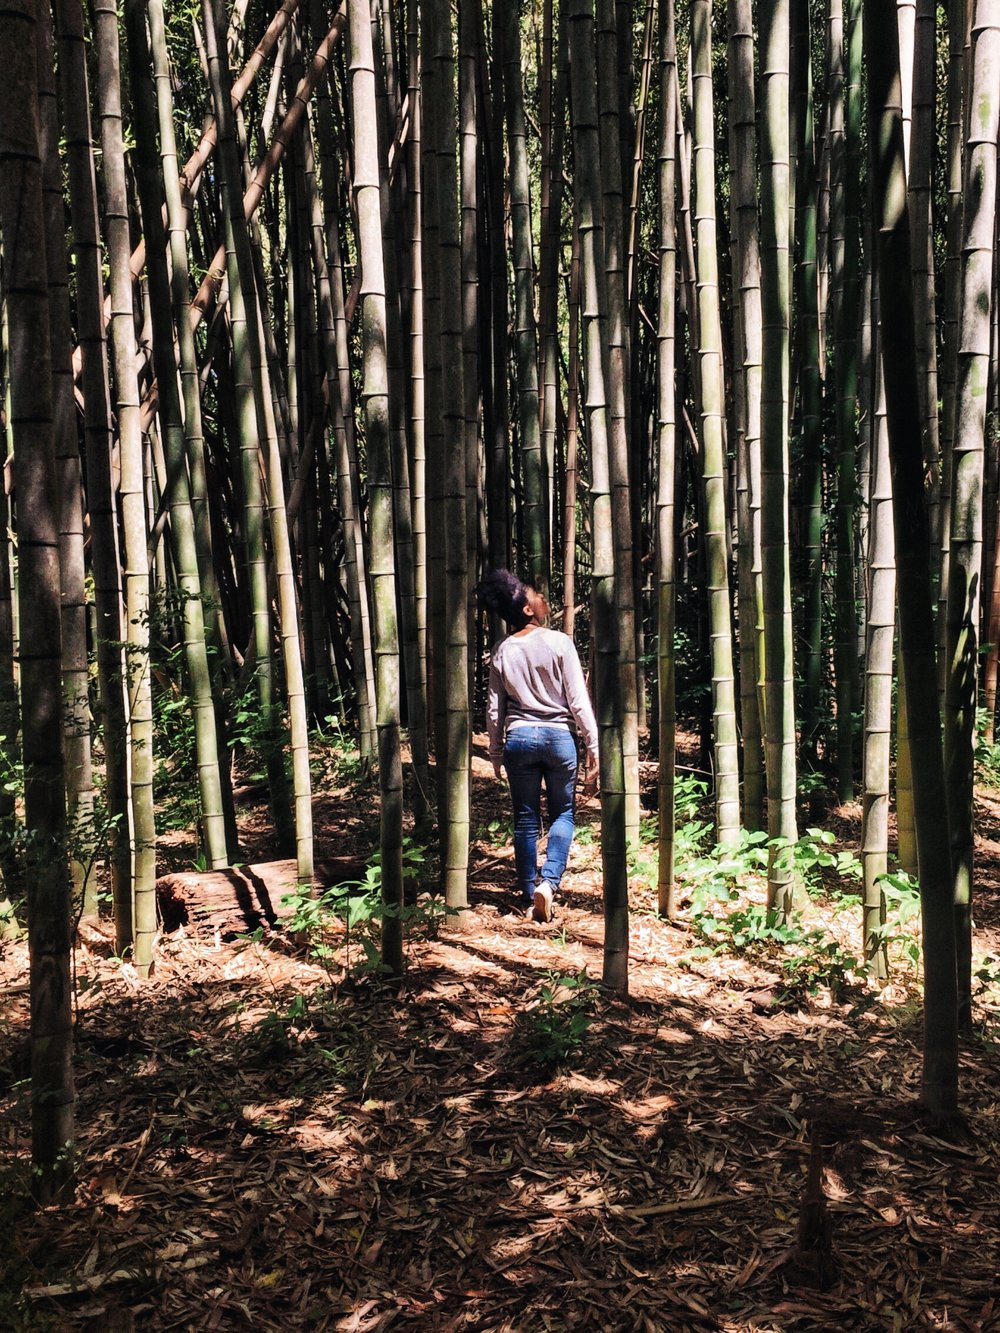 Exloring_bamboo_forest_East_Palisades_trail_by_Atanta_photographer_Chanel_French_10